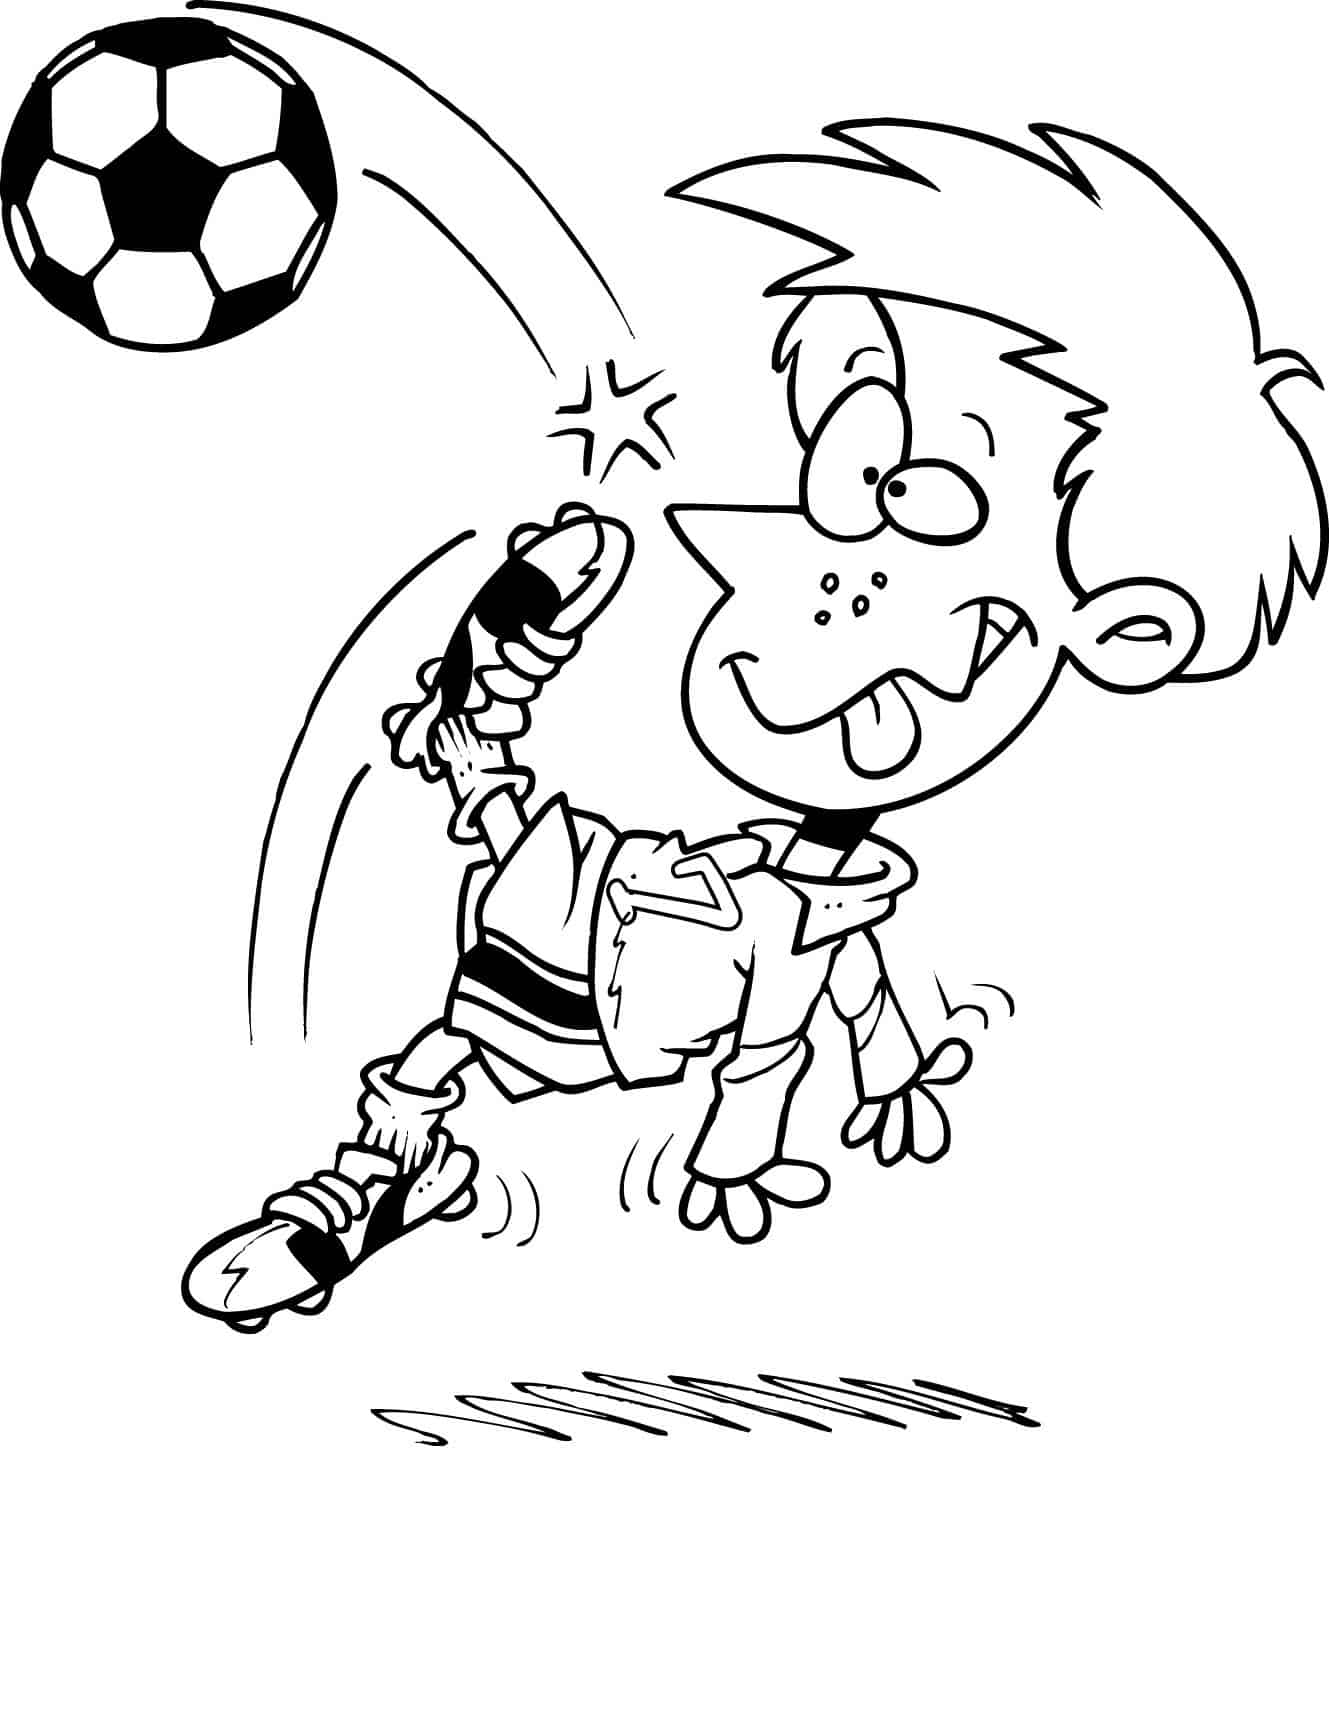 football pictures to colour and print football coloring pages kids should have five facts colour print pictures football and to